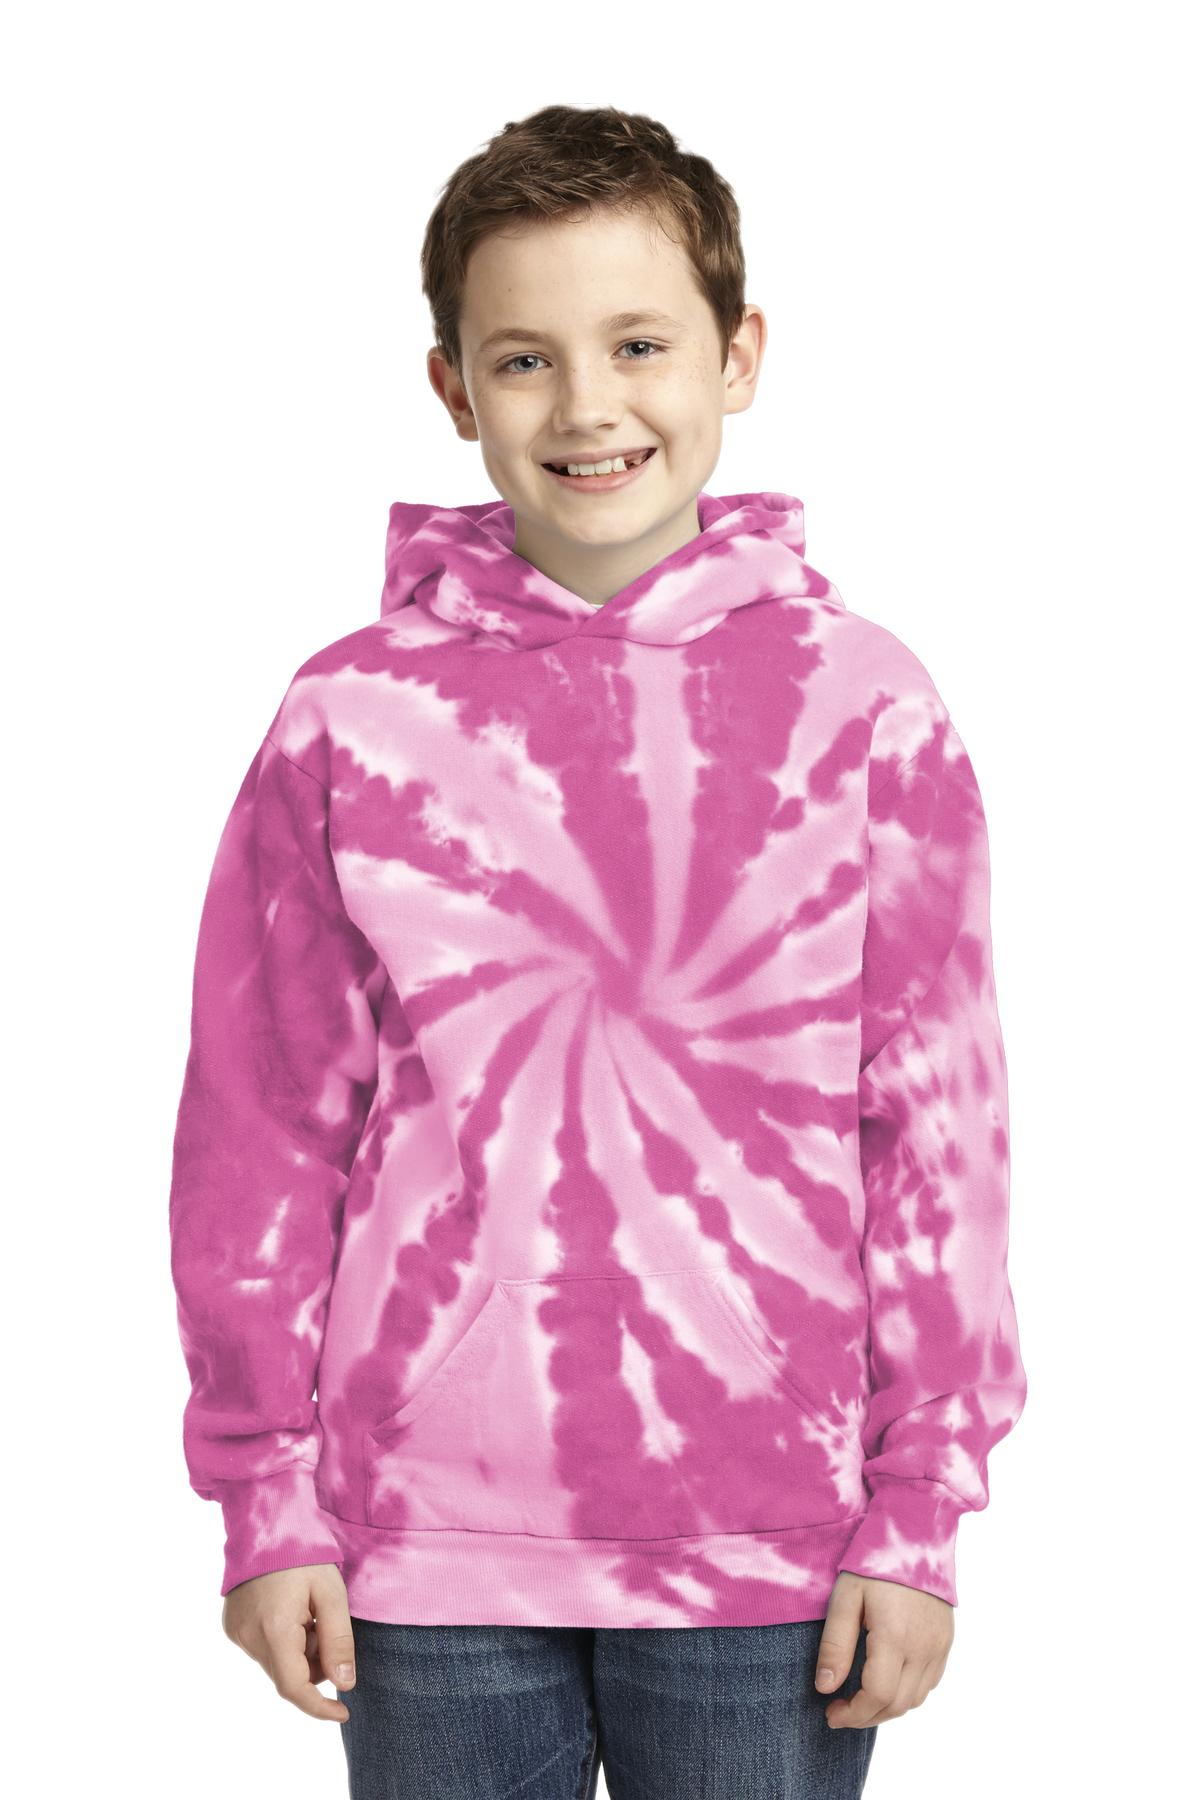 Port & Company ®  Youth Tie-Dye Pullover Hooded Sweatshirt. PC146Y - Pink